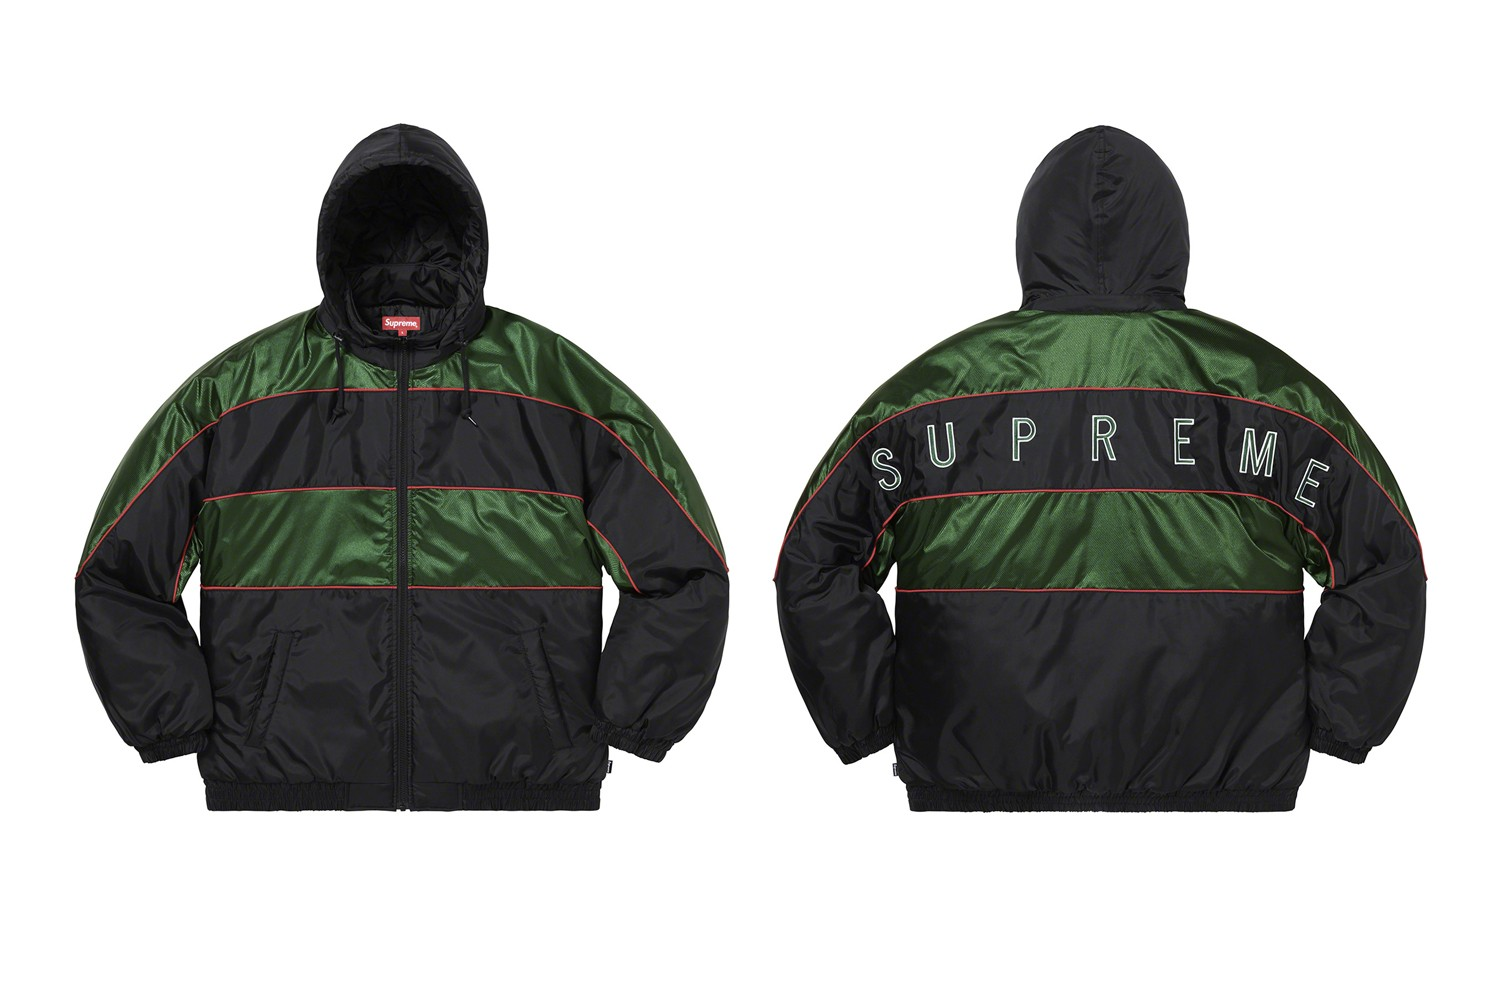 Supreme Fall Winter 2019 Week 4 6 Drop List Palace Celine The north Face Louis Vuitton Palm Angels BBC Billionaire Boys Club Icecream Y-3 Girls Don't Cry